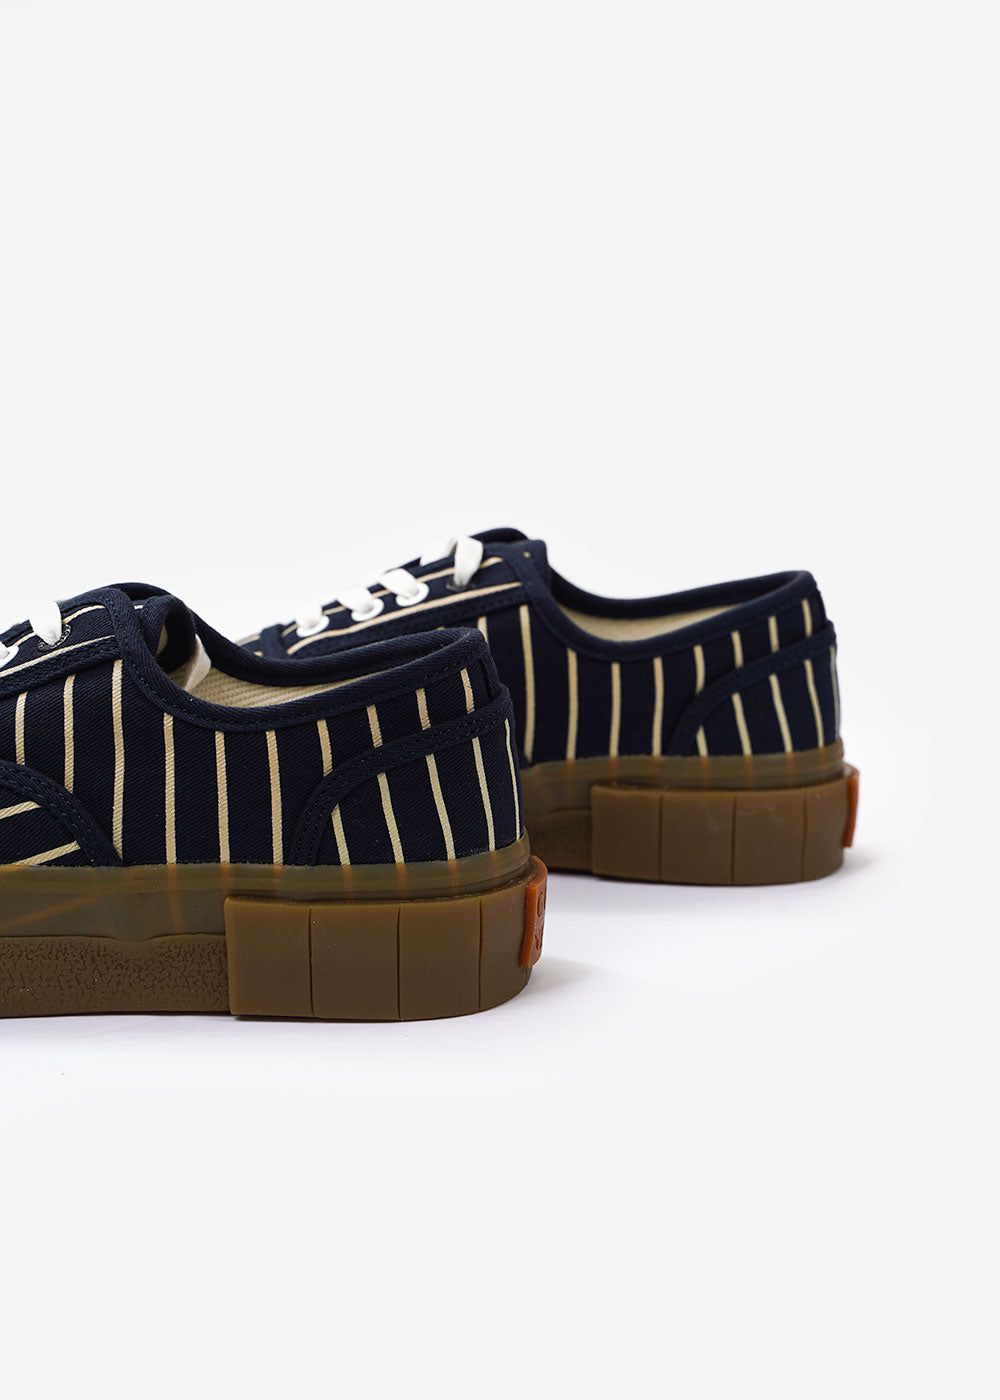 GOOD NEWS Hurler 2 Low Sneakers — New Classics Studios